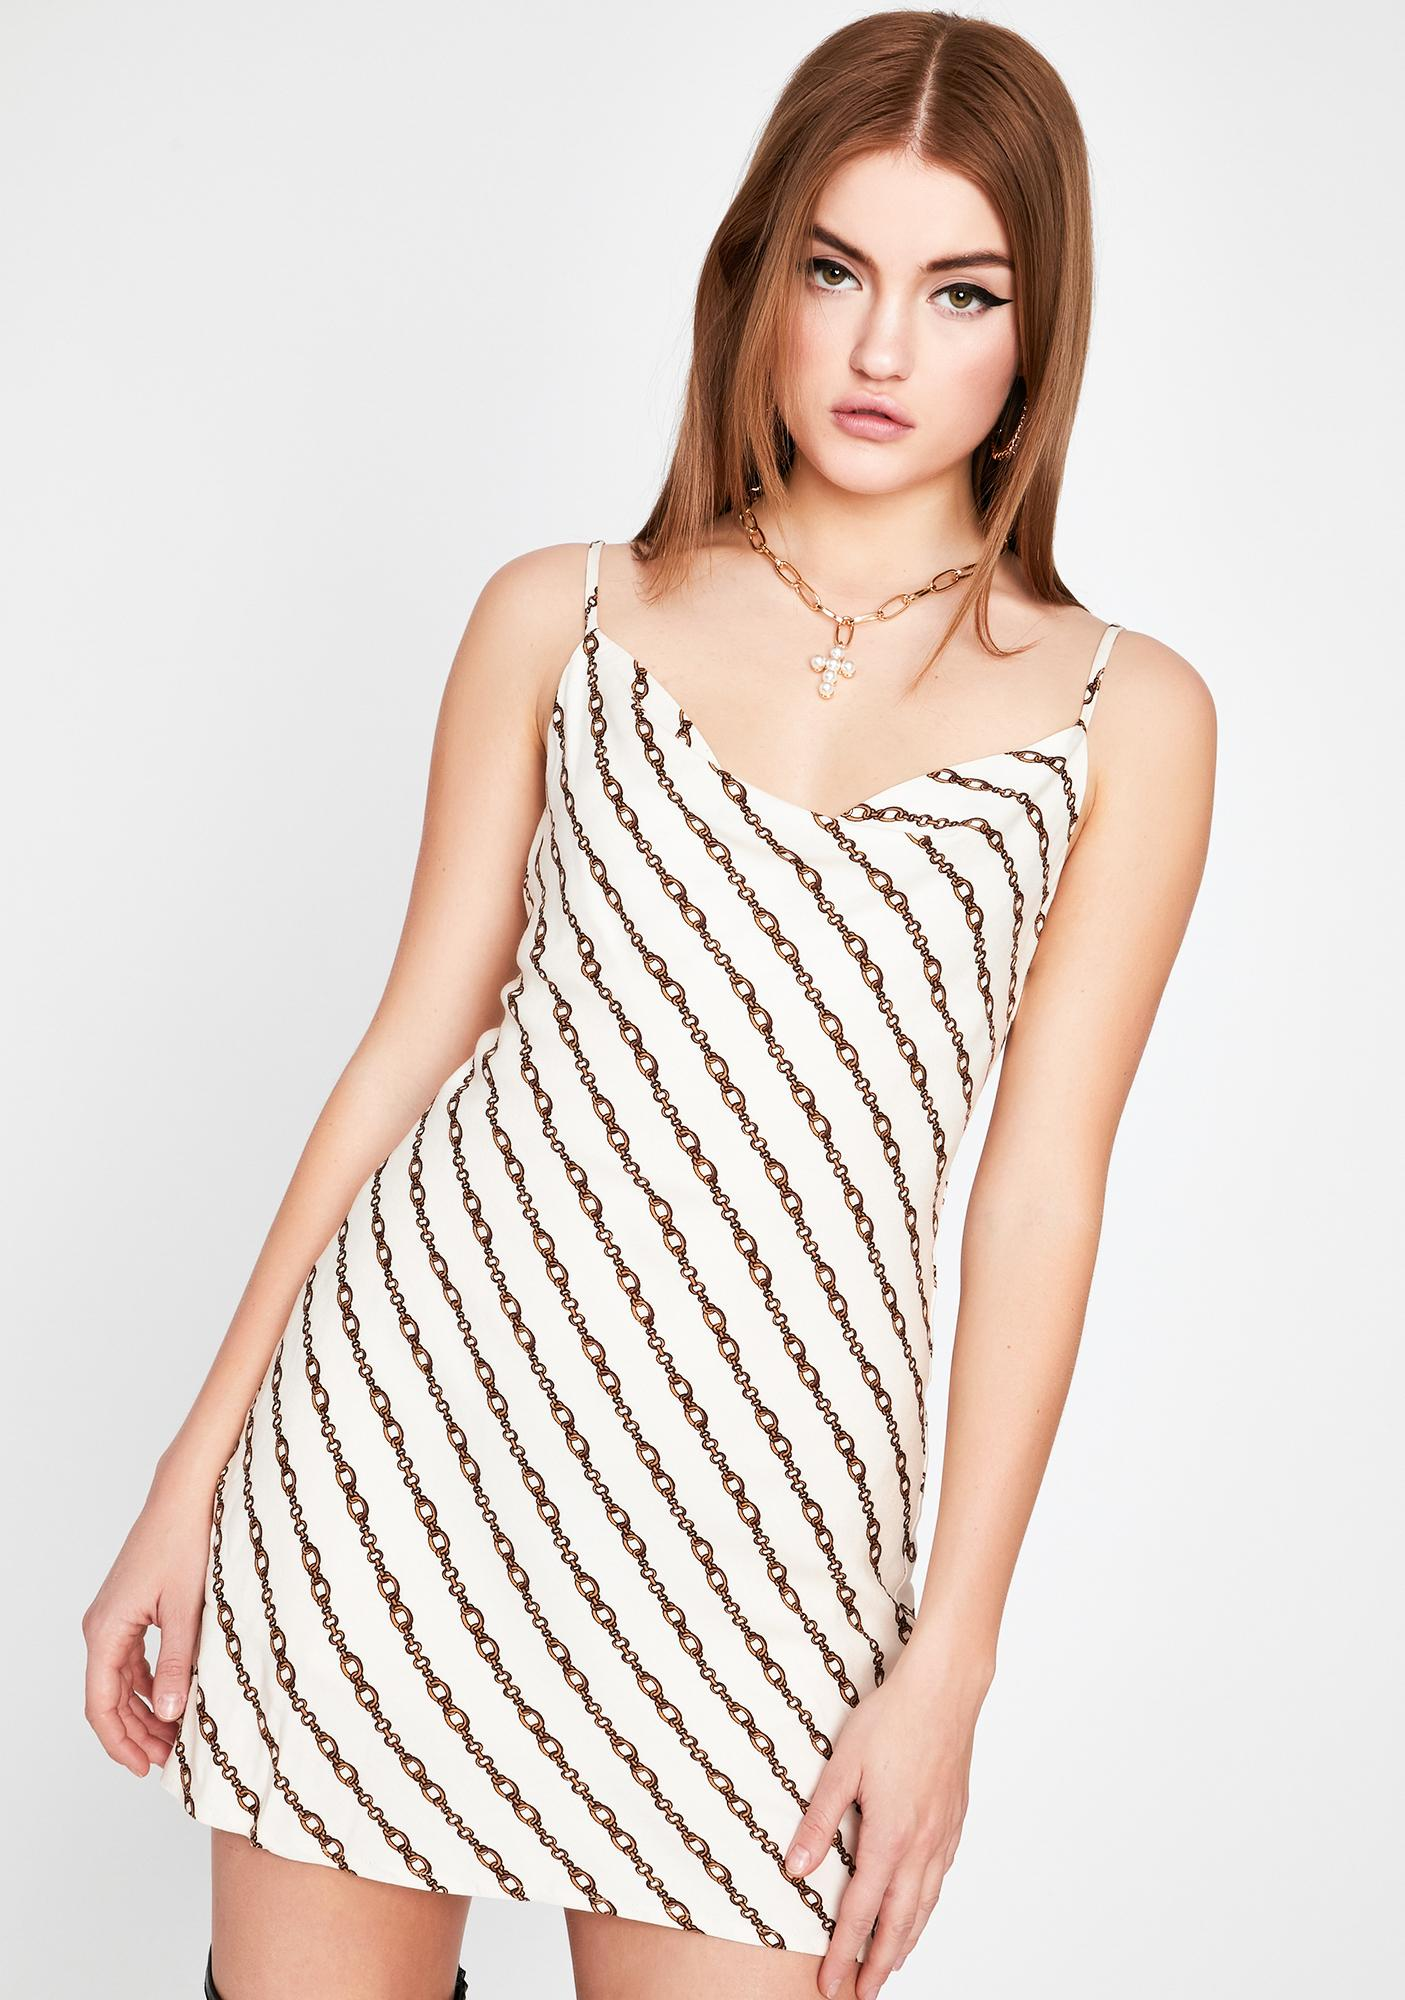 Body In Chains Mini Dress